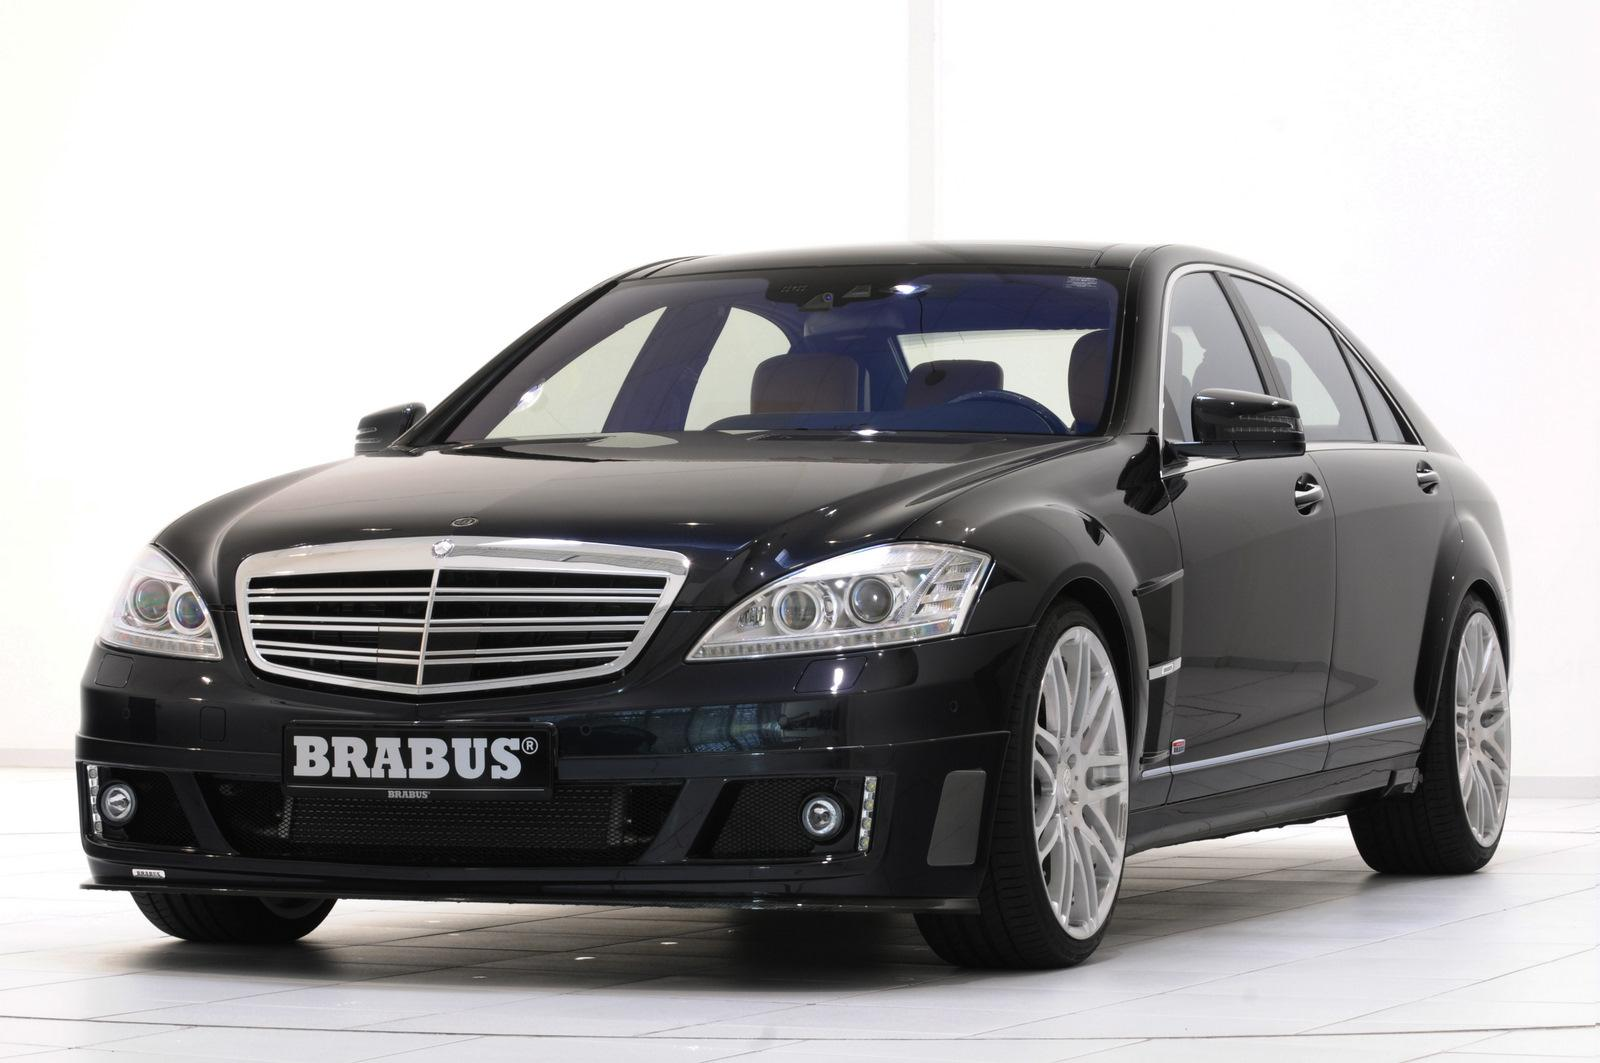 Fastest Sedan Ever Brabus SV12 R Biturbo 800